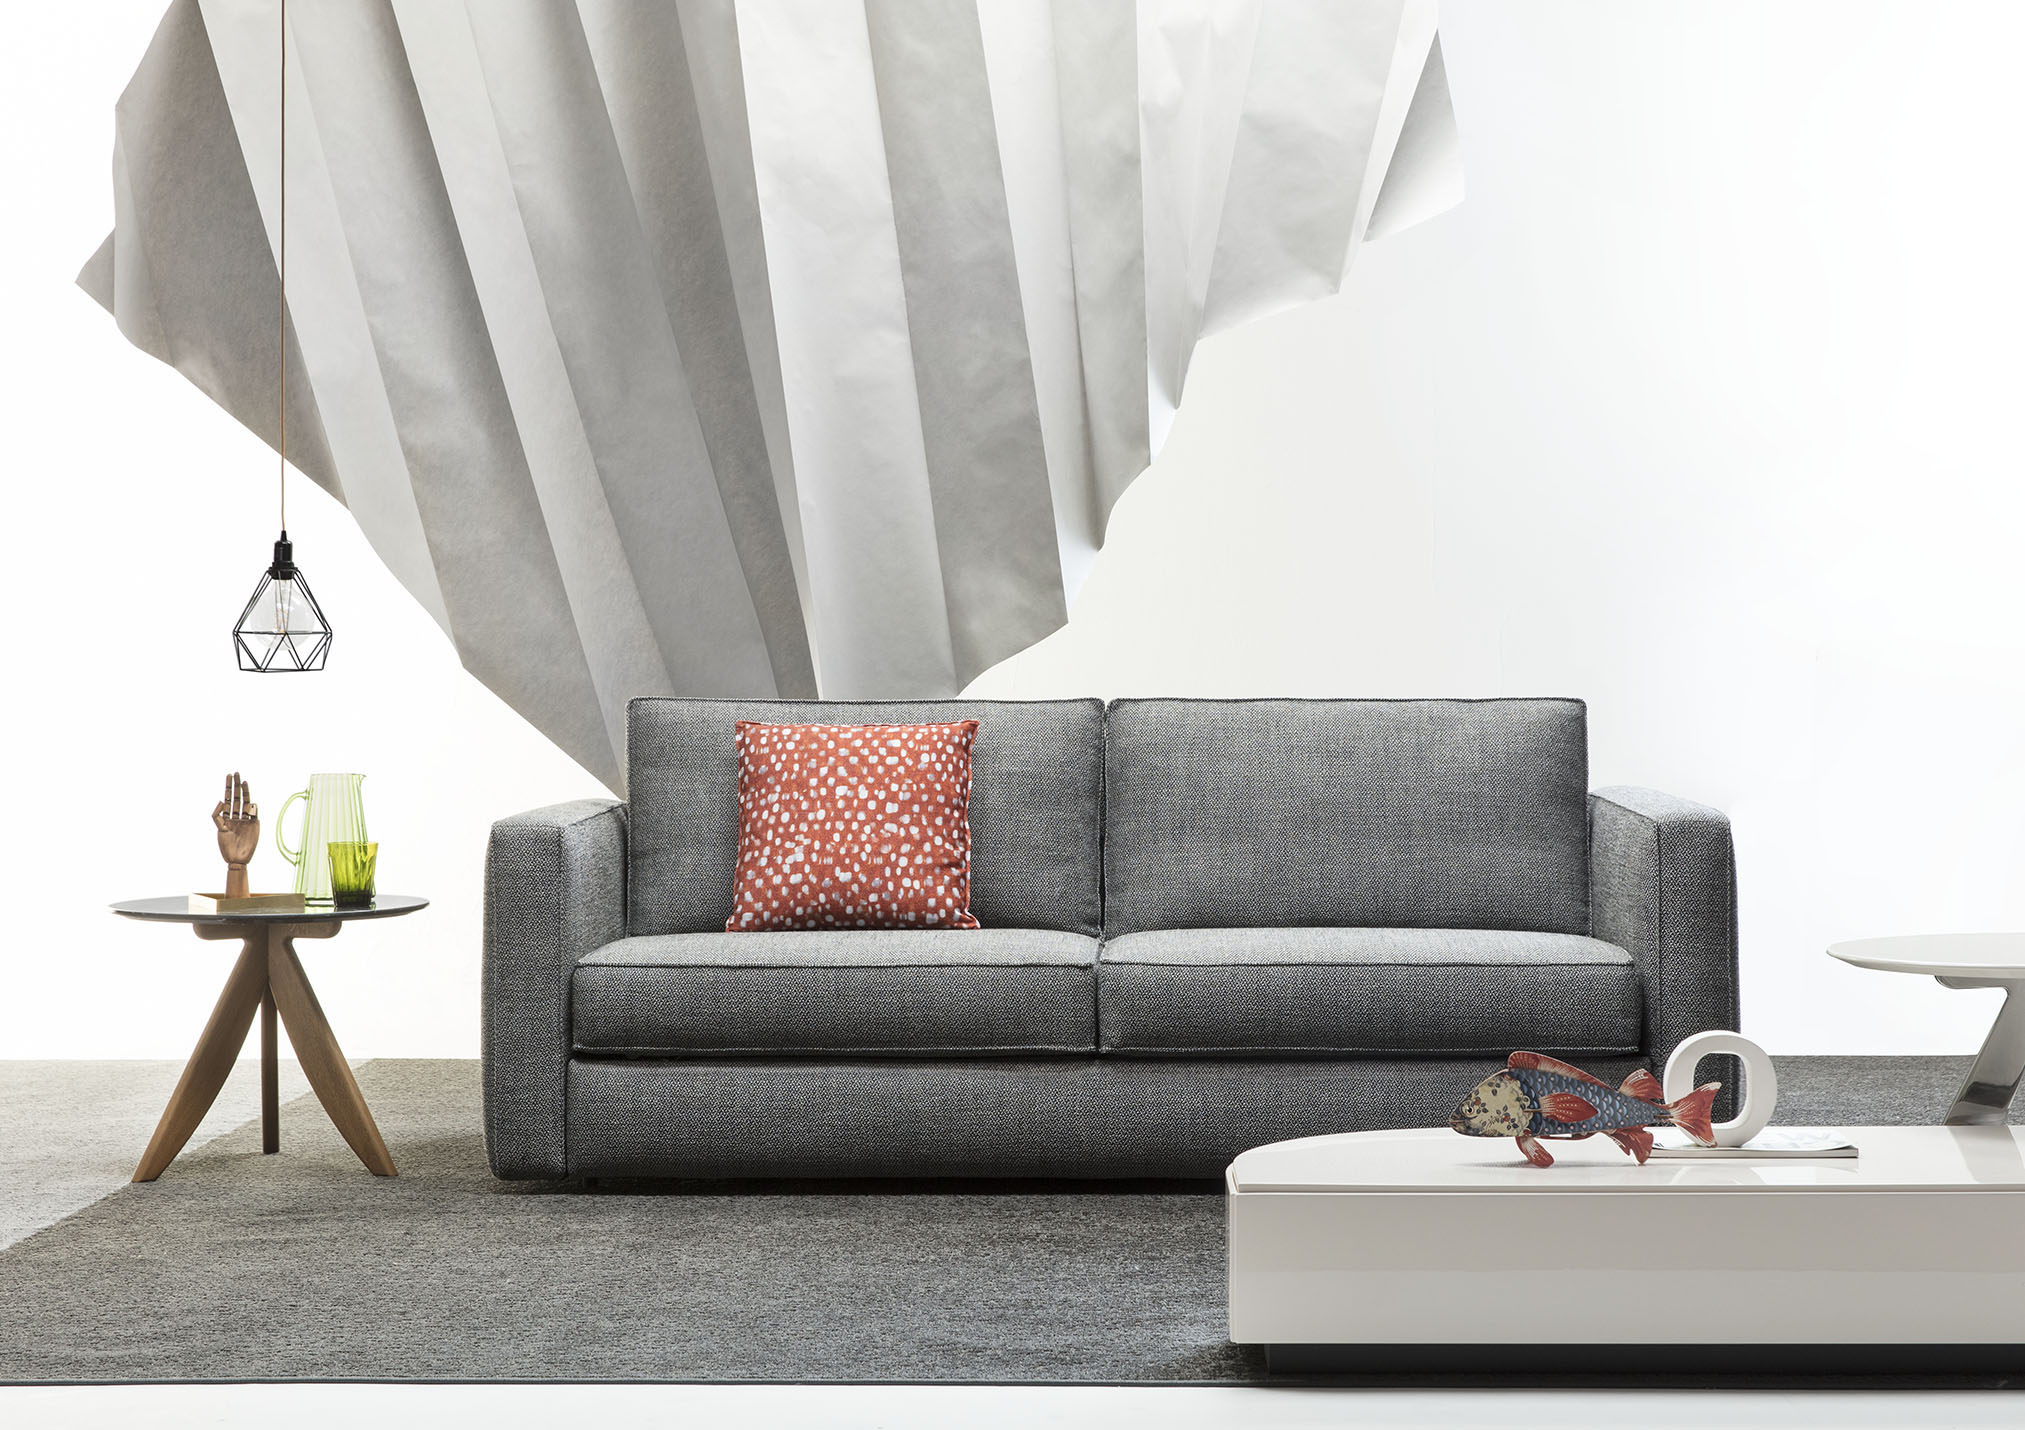 Berto Salotti Meda Gulliver Sofa Bed Made By Berto For Furnish 7 Different Homes